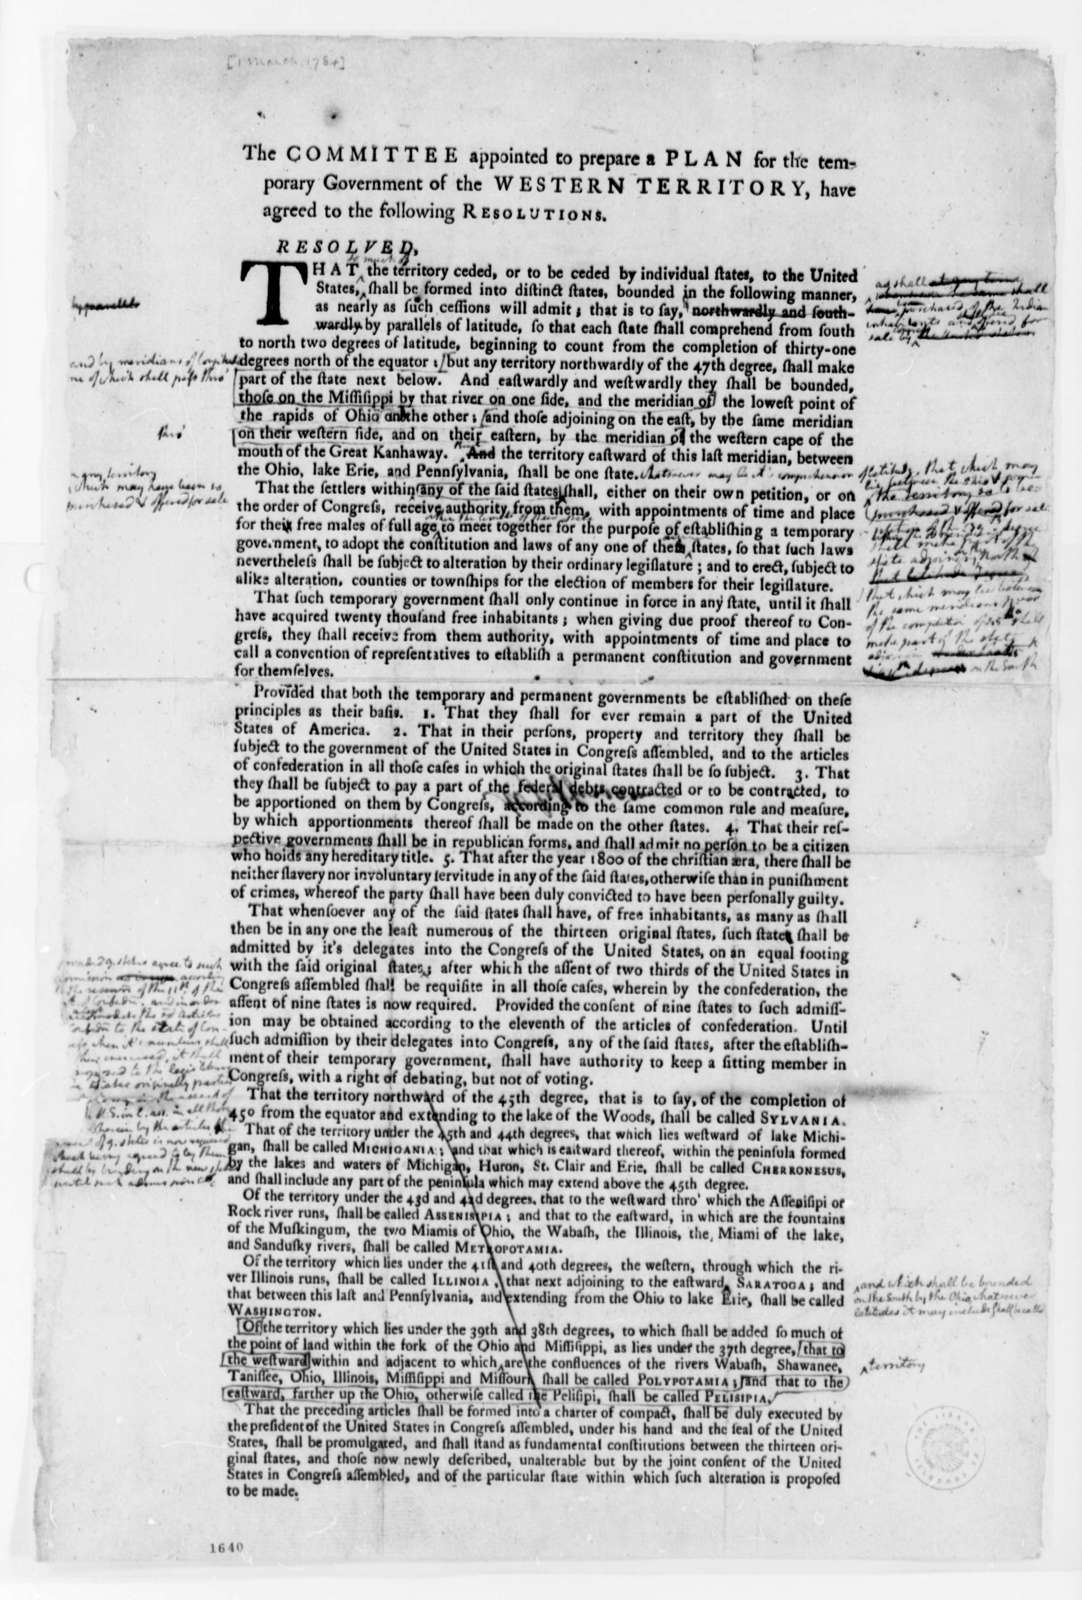 United States Congress, March 1, 1784, Printed Resolution on Western Territory Government; with Notations by Thomas Jefferson